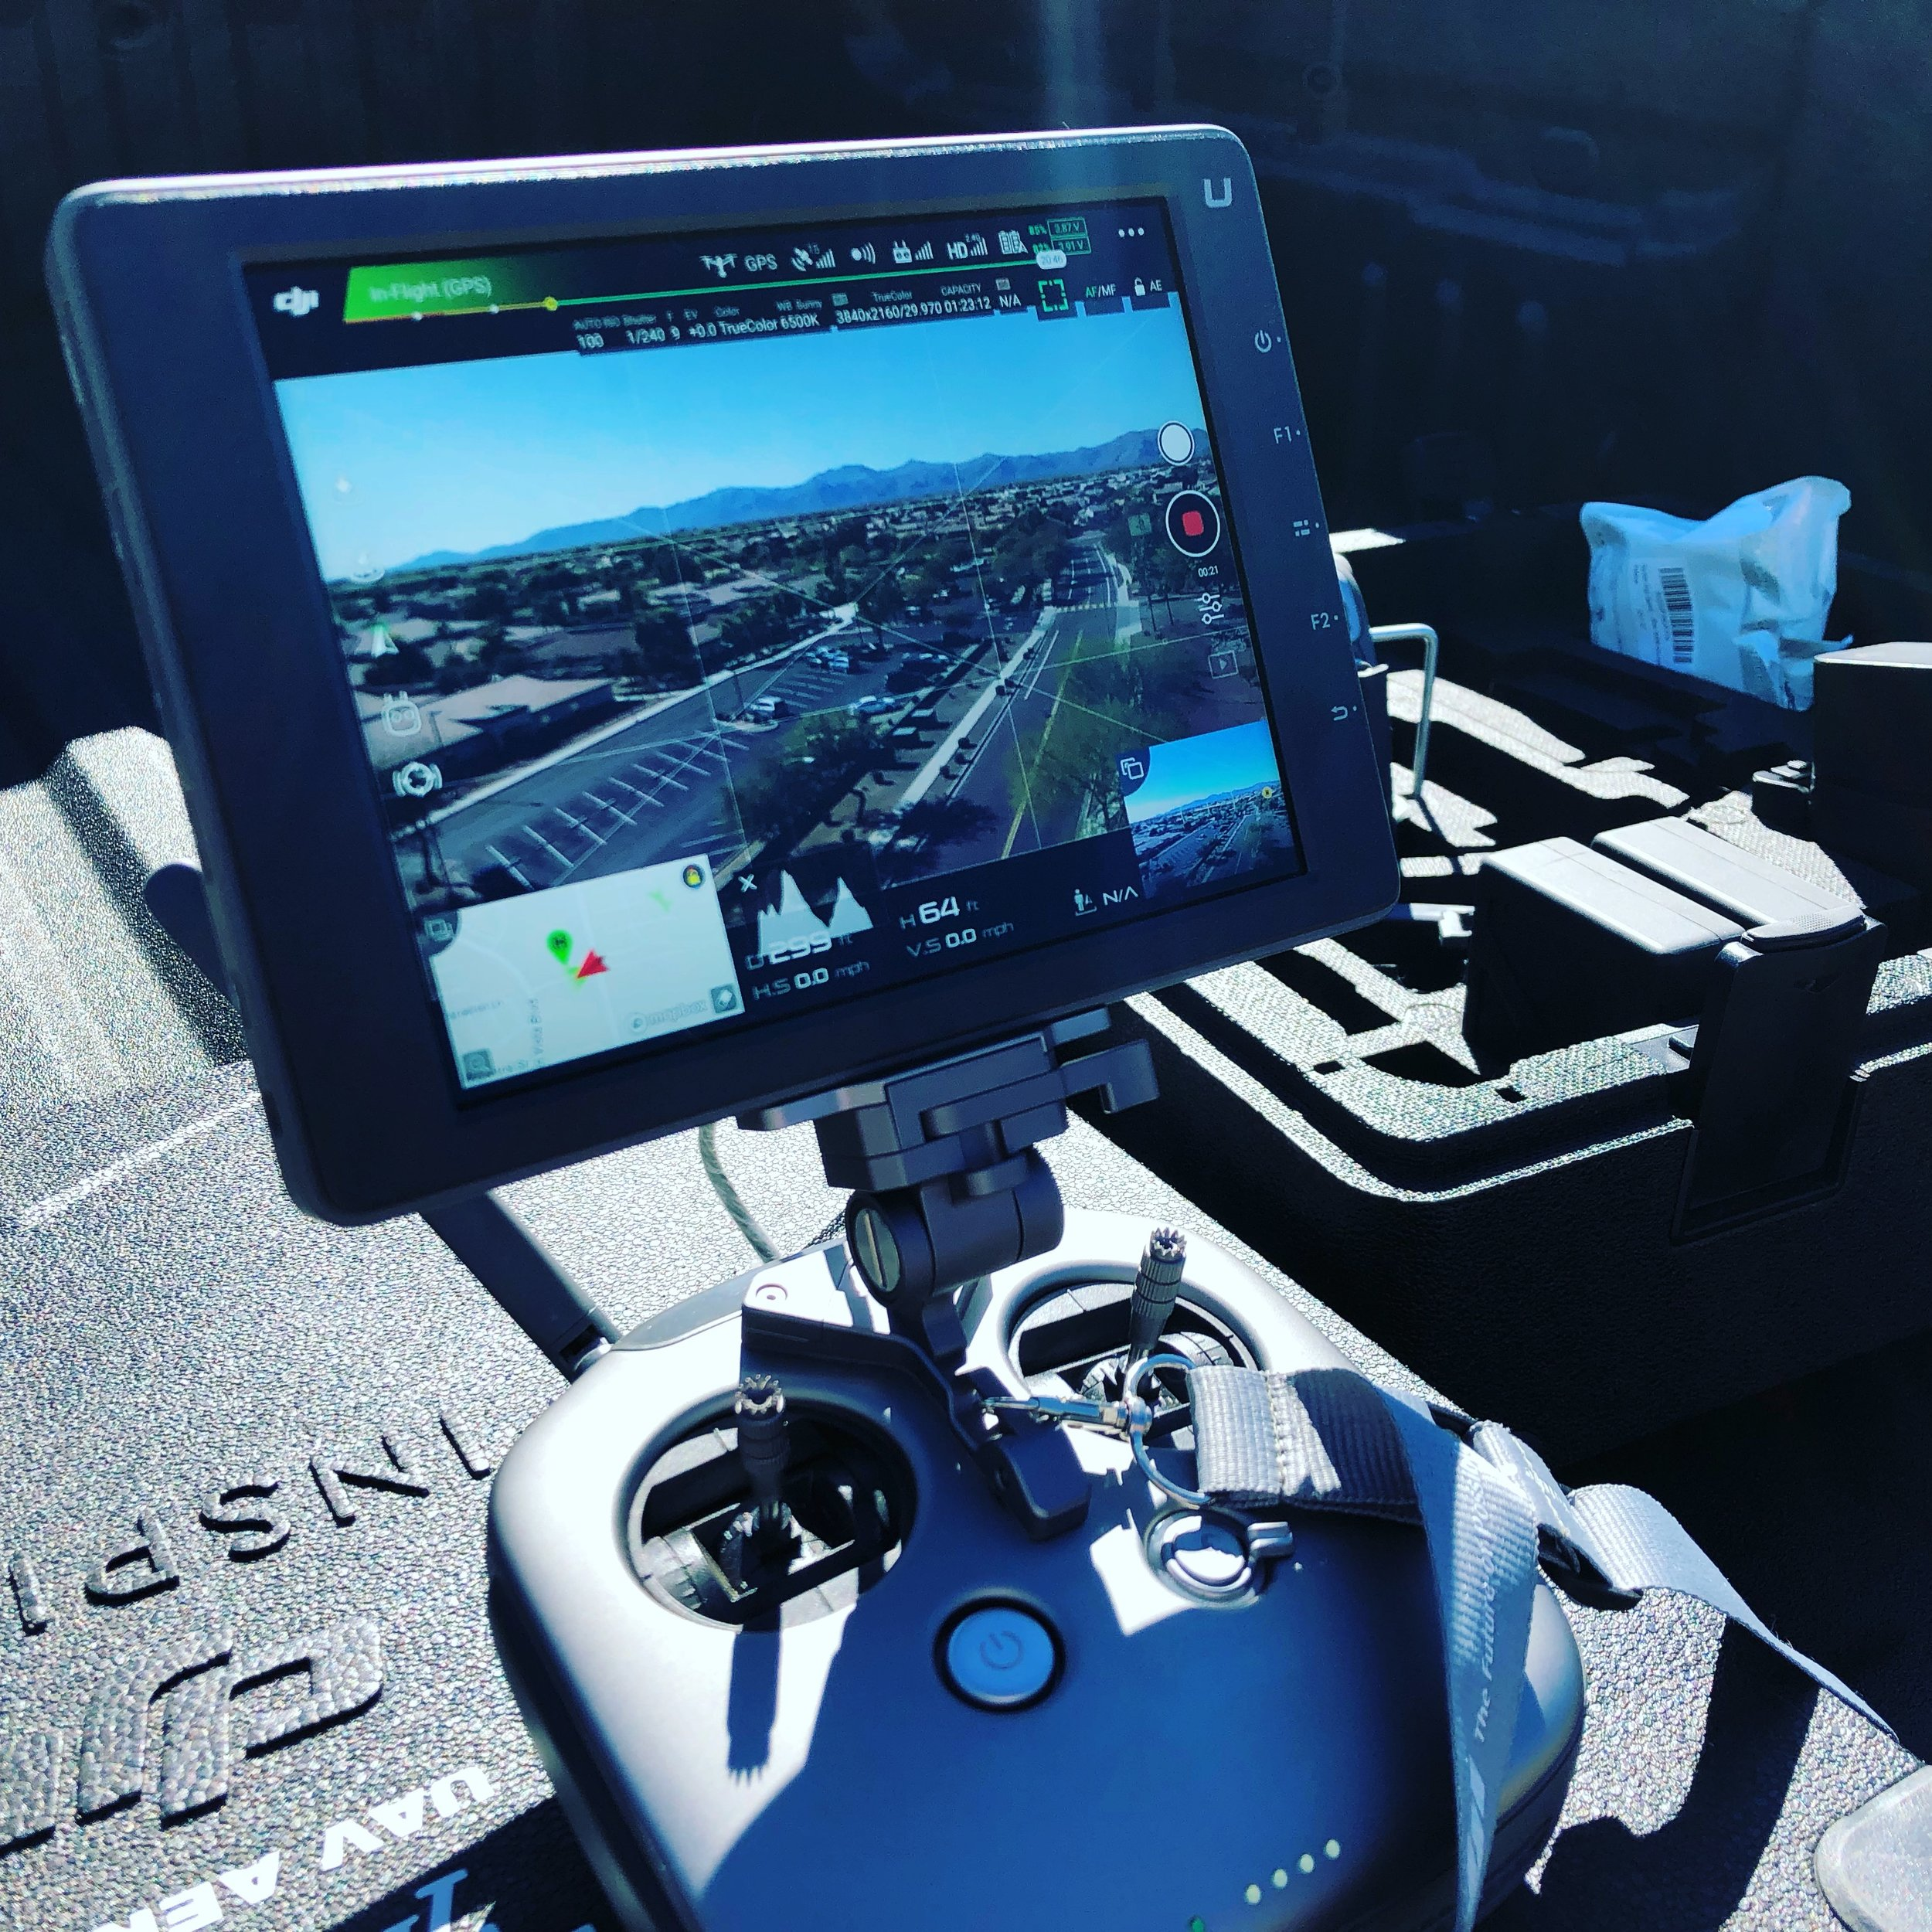 UAV's used to observe & evaluate school fire drill in Surprise, AZ